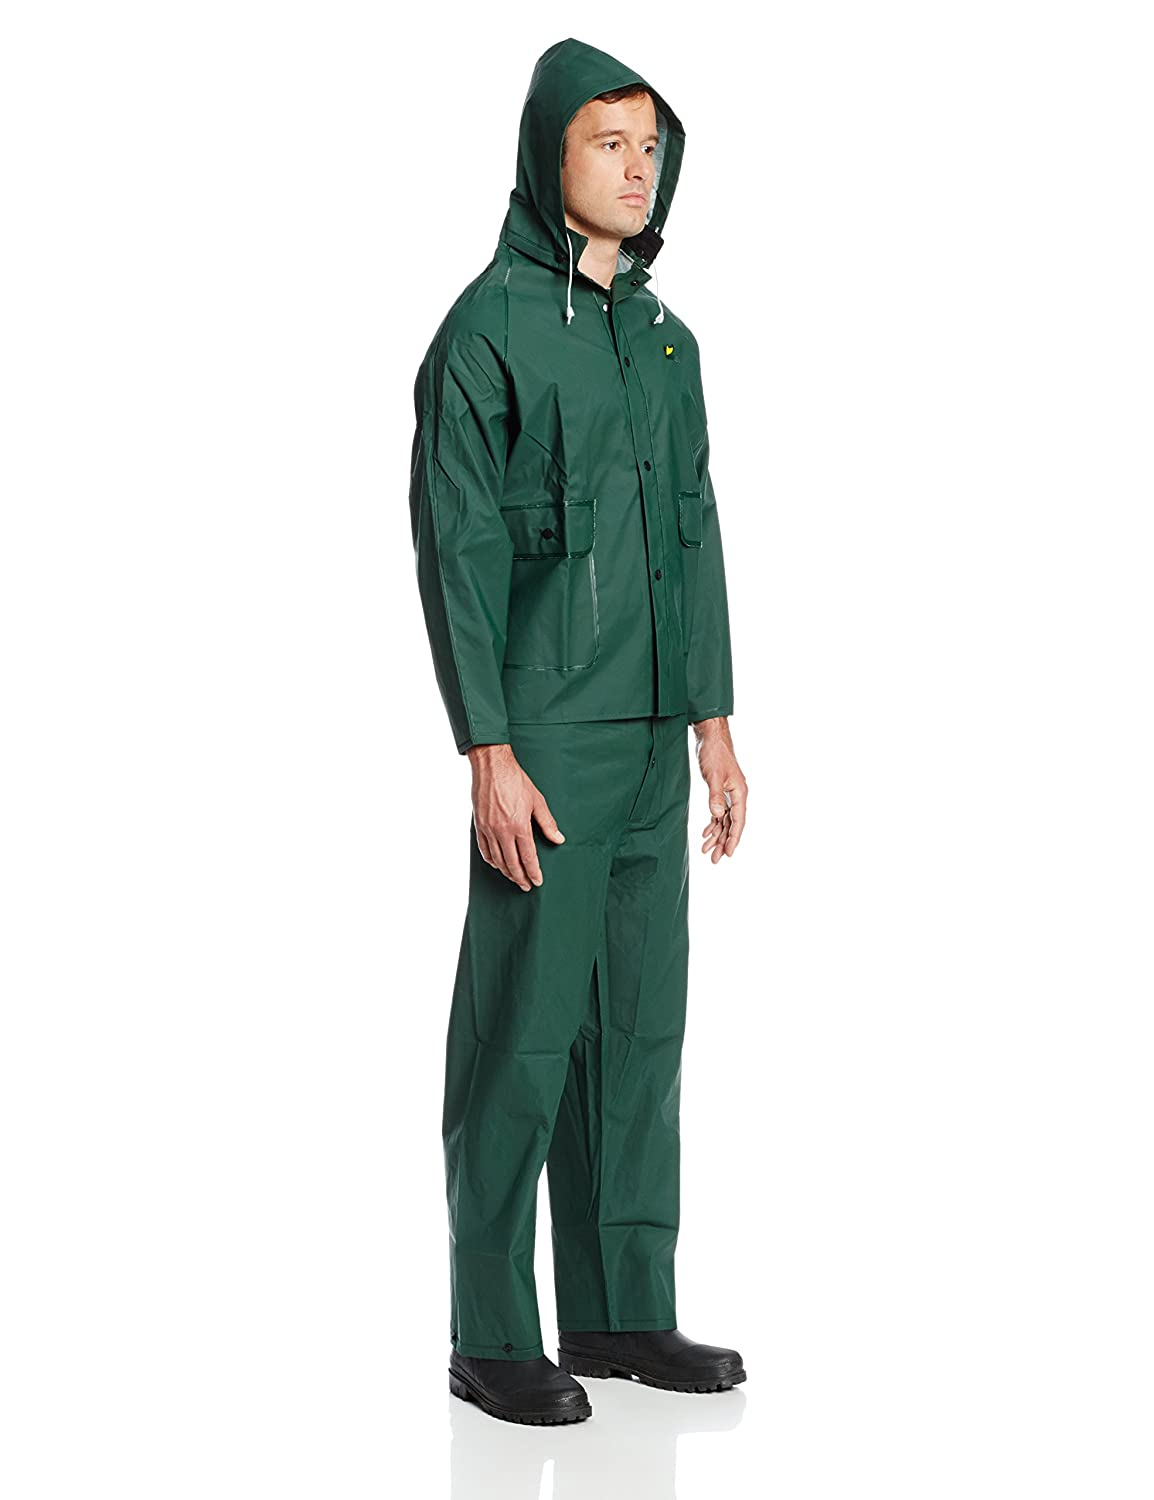 ONGUARD 76034 PVC on Polyester Jacket with Attached Hood Size Large ONGUARD Industries